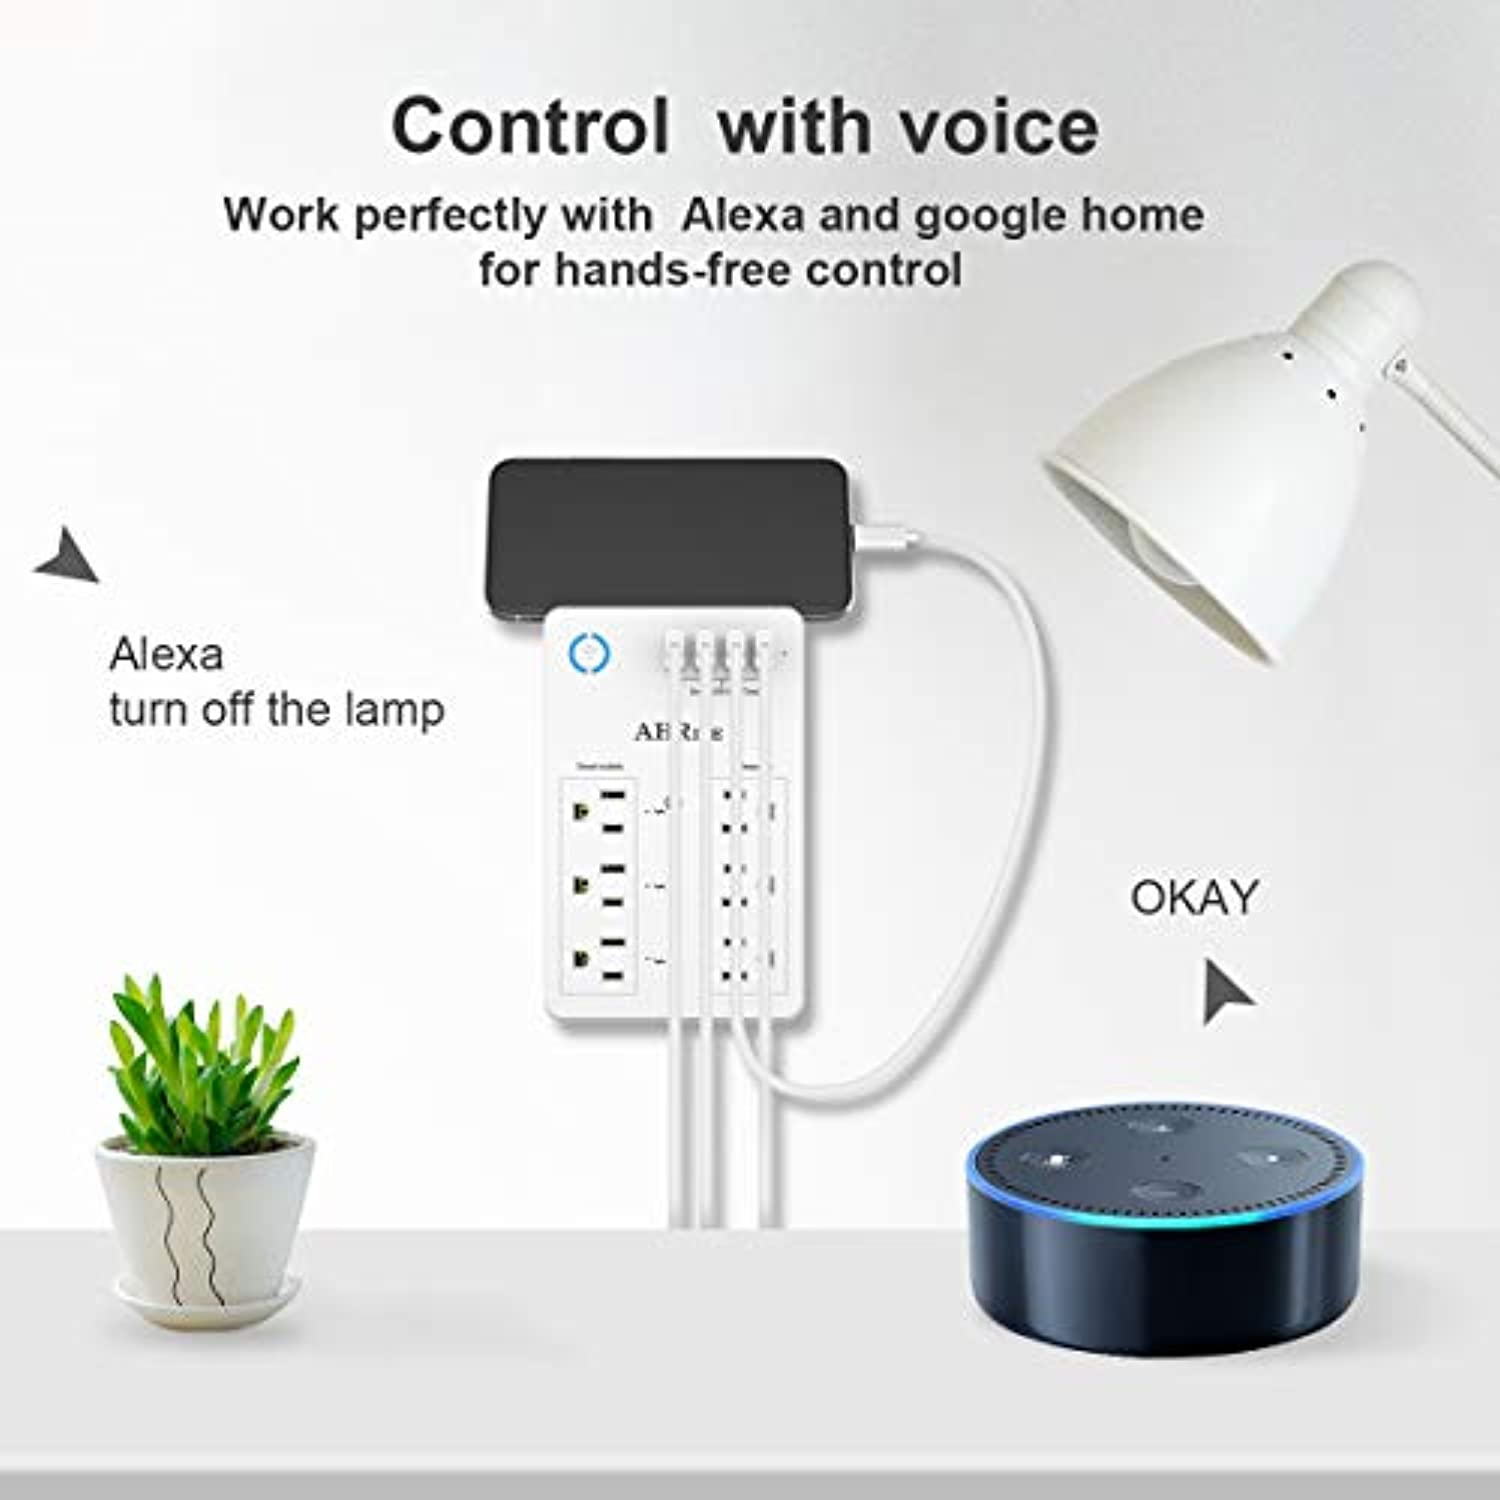 Classier: Buy AHRISE Smart Plug, USB Wall Charger, AHRISE WiFi Surge Protector with 4 USB Ports(4.8A/24W Total), 6-Outlet Extender(3 Smart Outlets), Compatible with Alexa Google Assistant for Voice Control